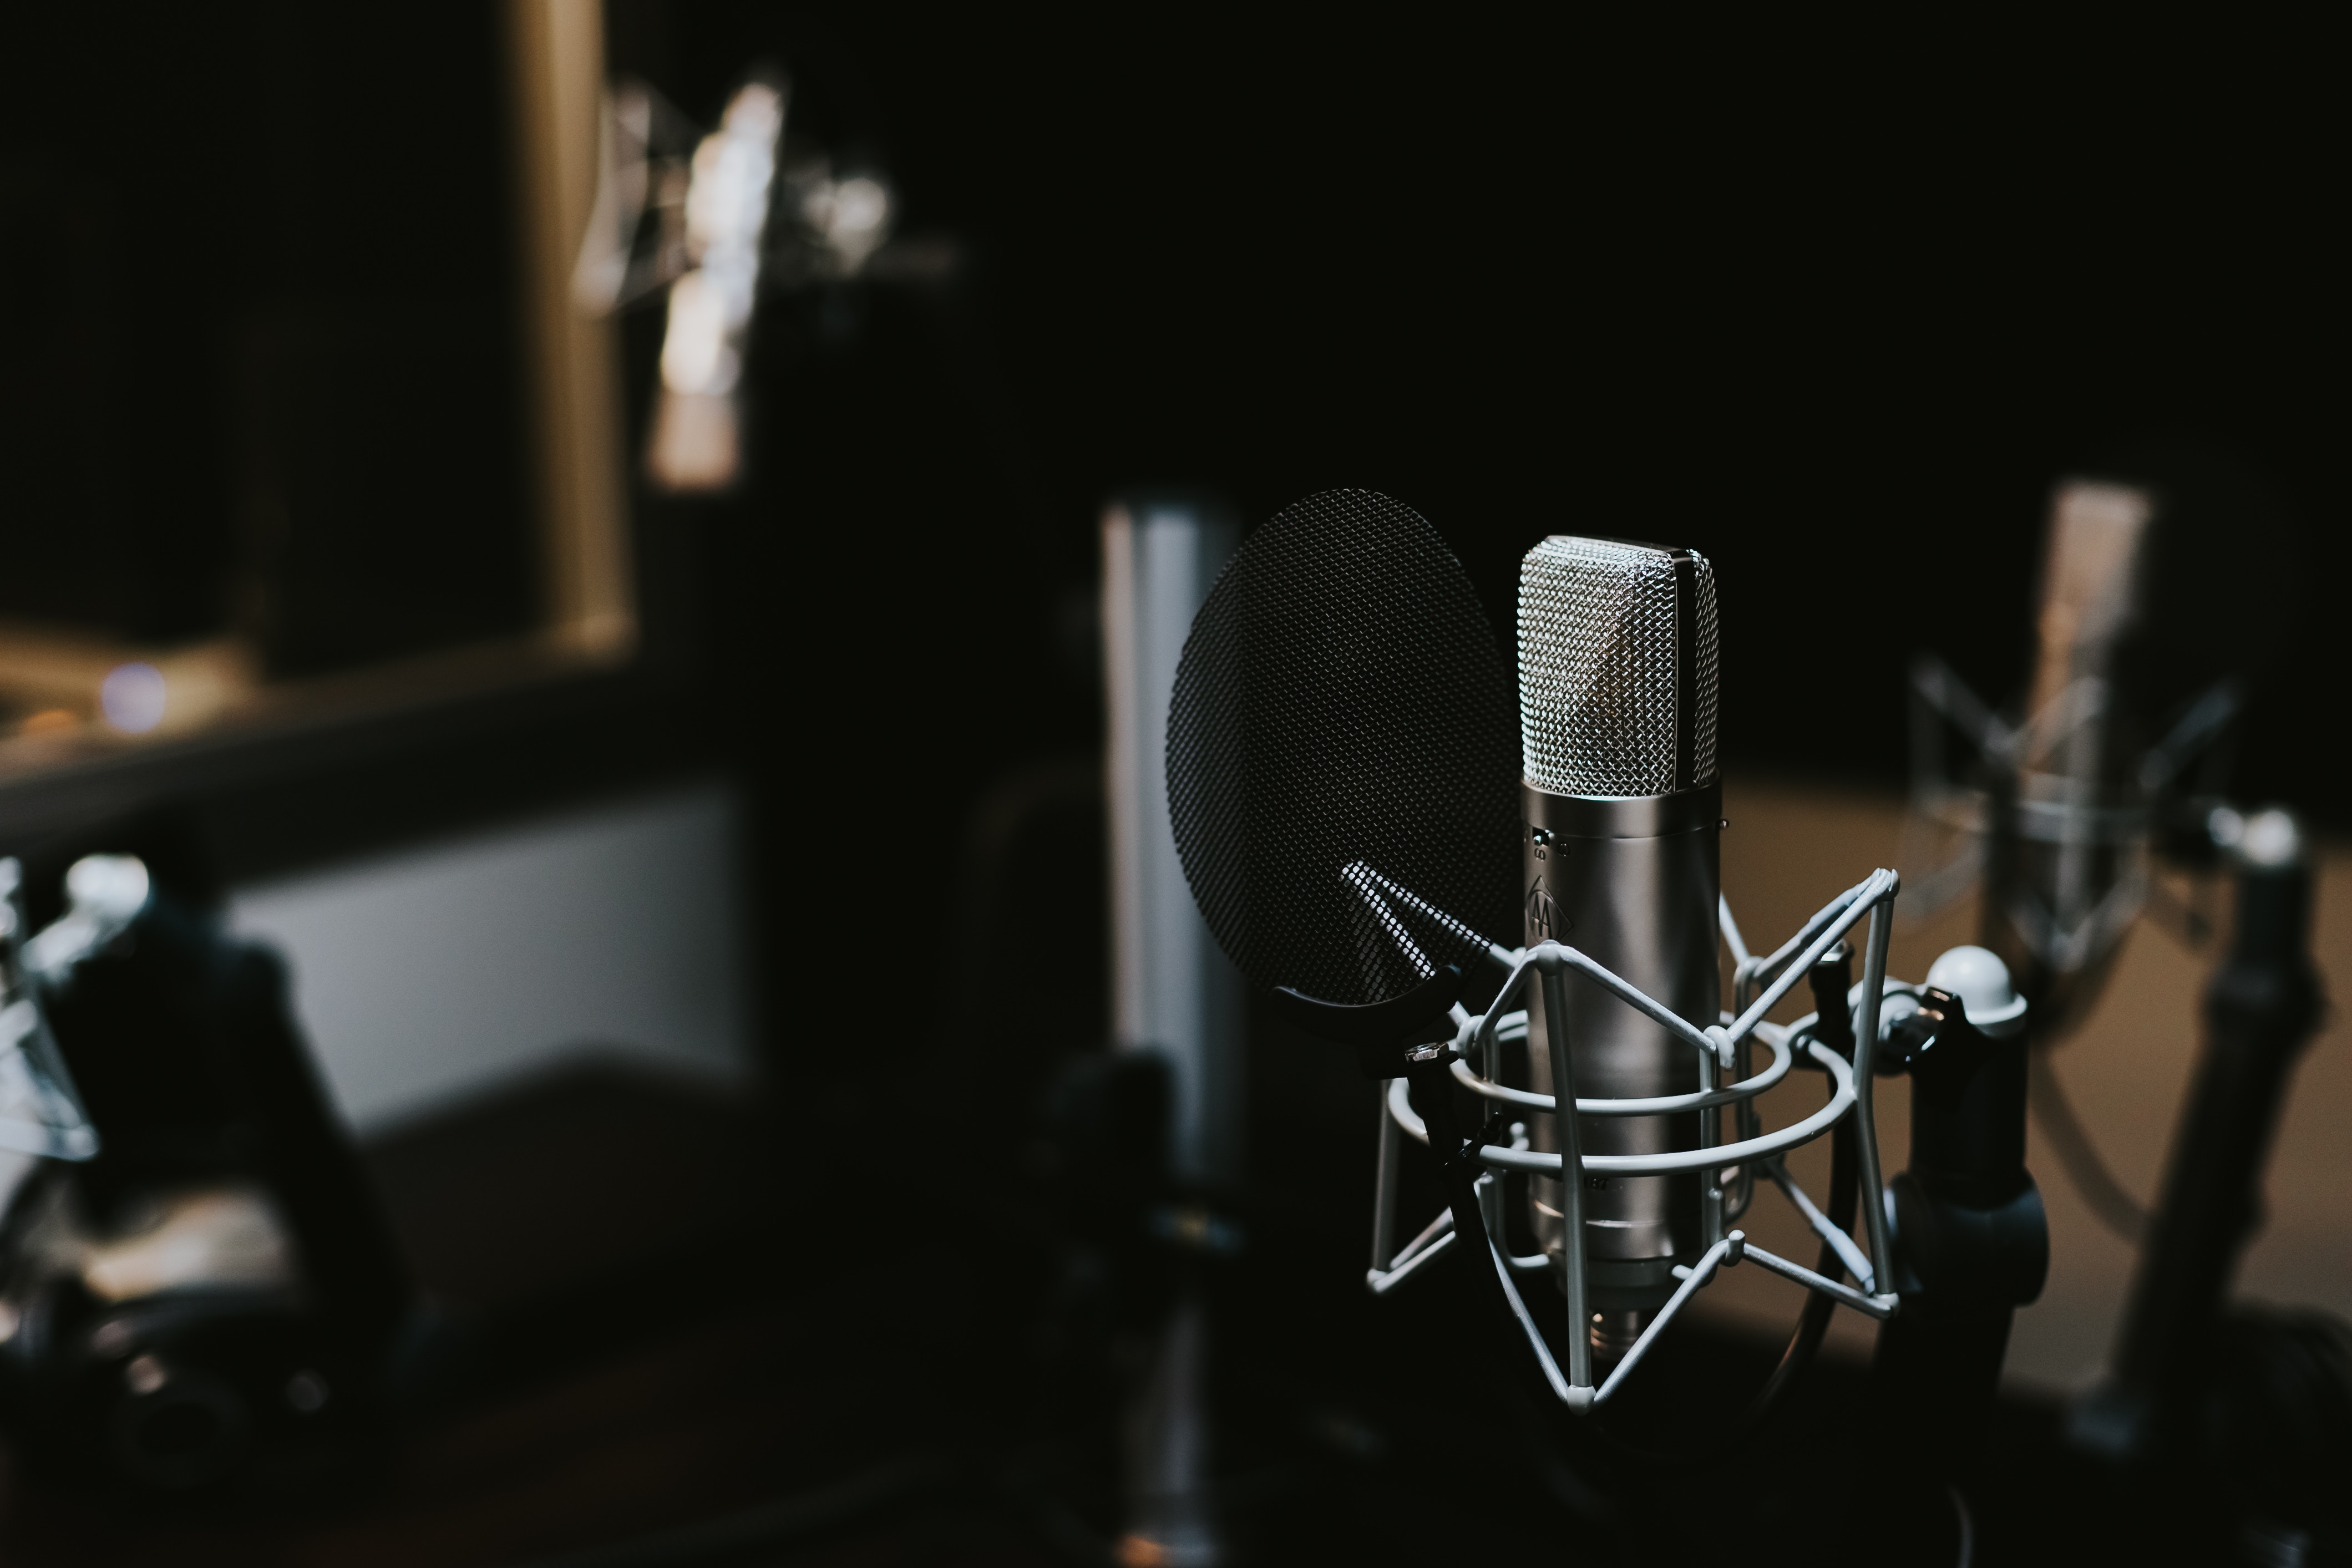 The first episode of our GEHIRNfutter podcast: The beginning of an insight journey for the topics: Consciousness, Perception & Brain Research.